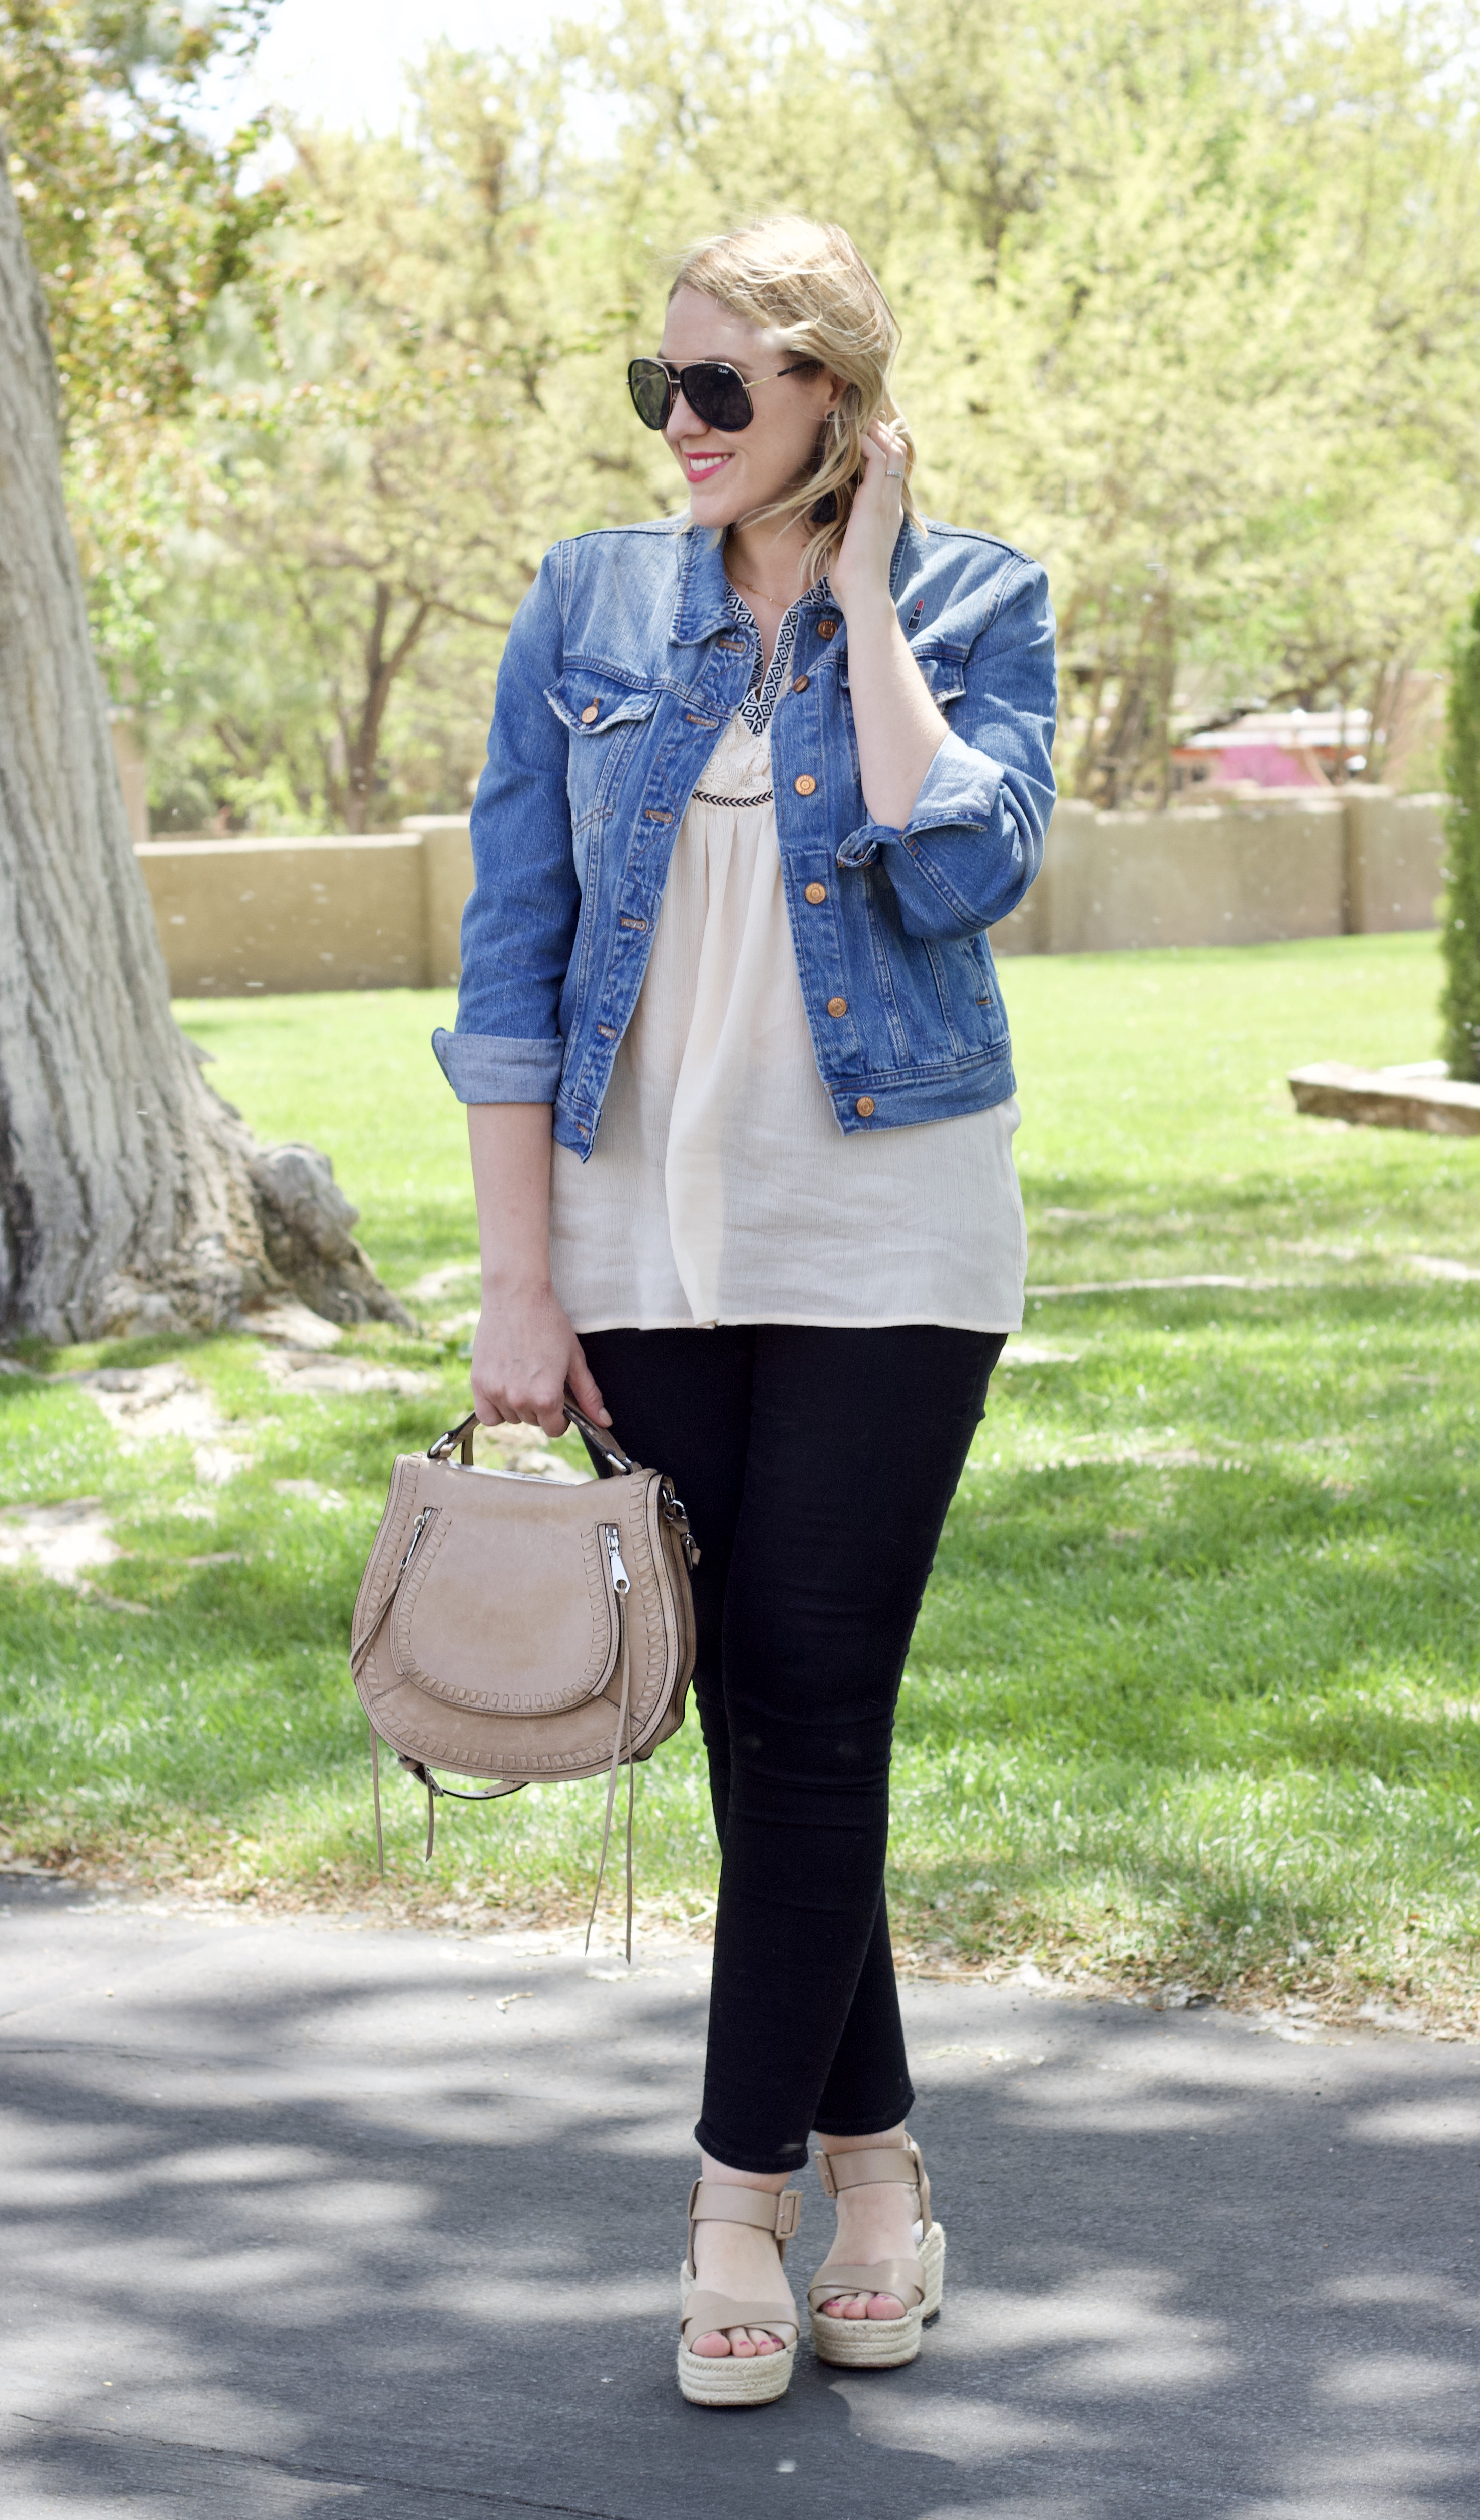 mom style for spring #momstyle #denimjacket #curvyfashion